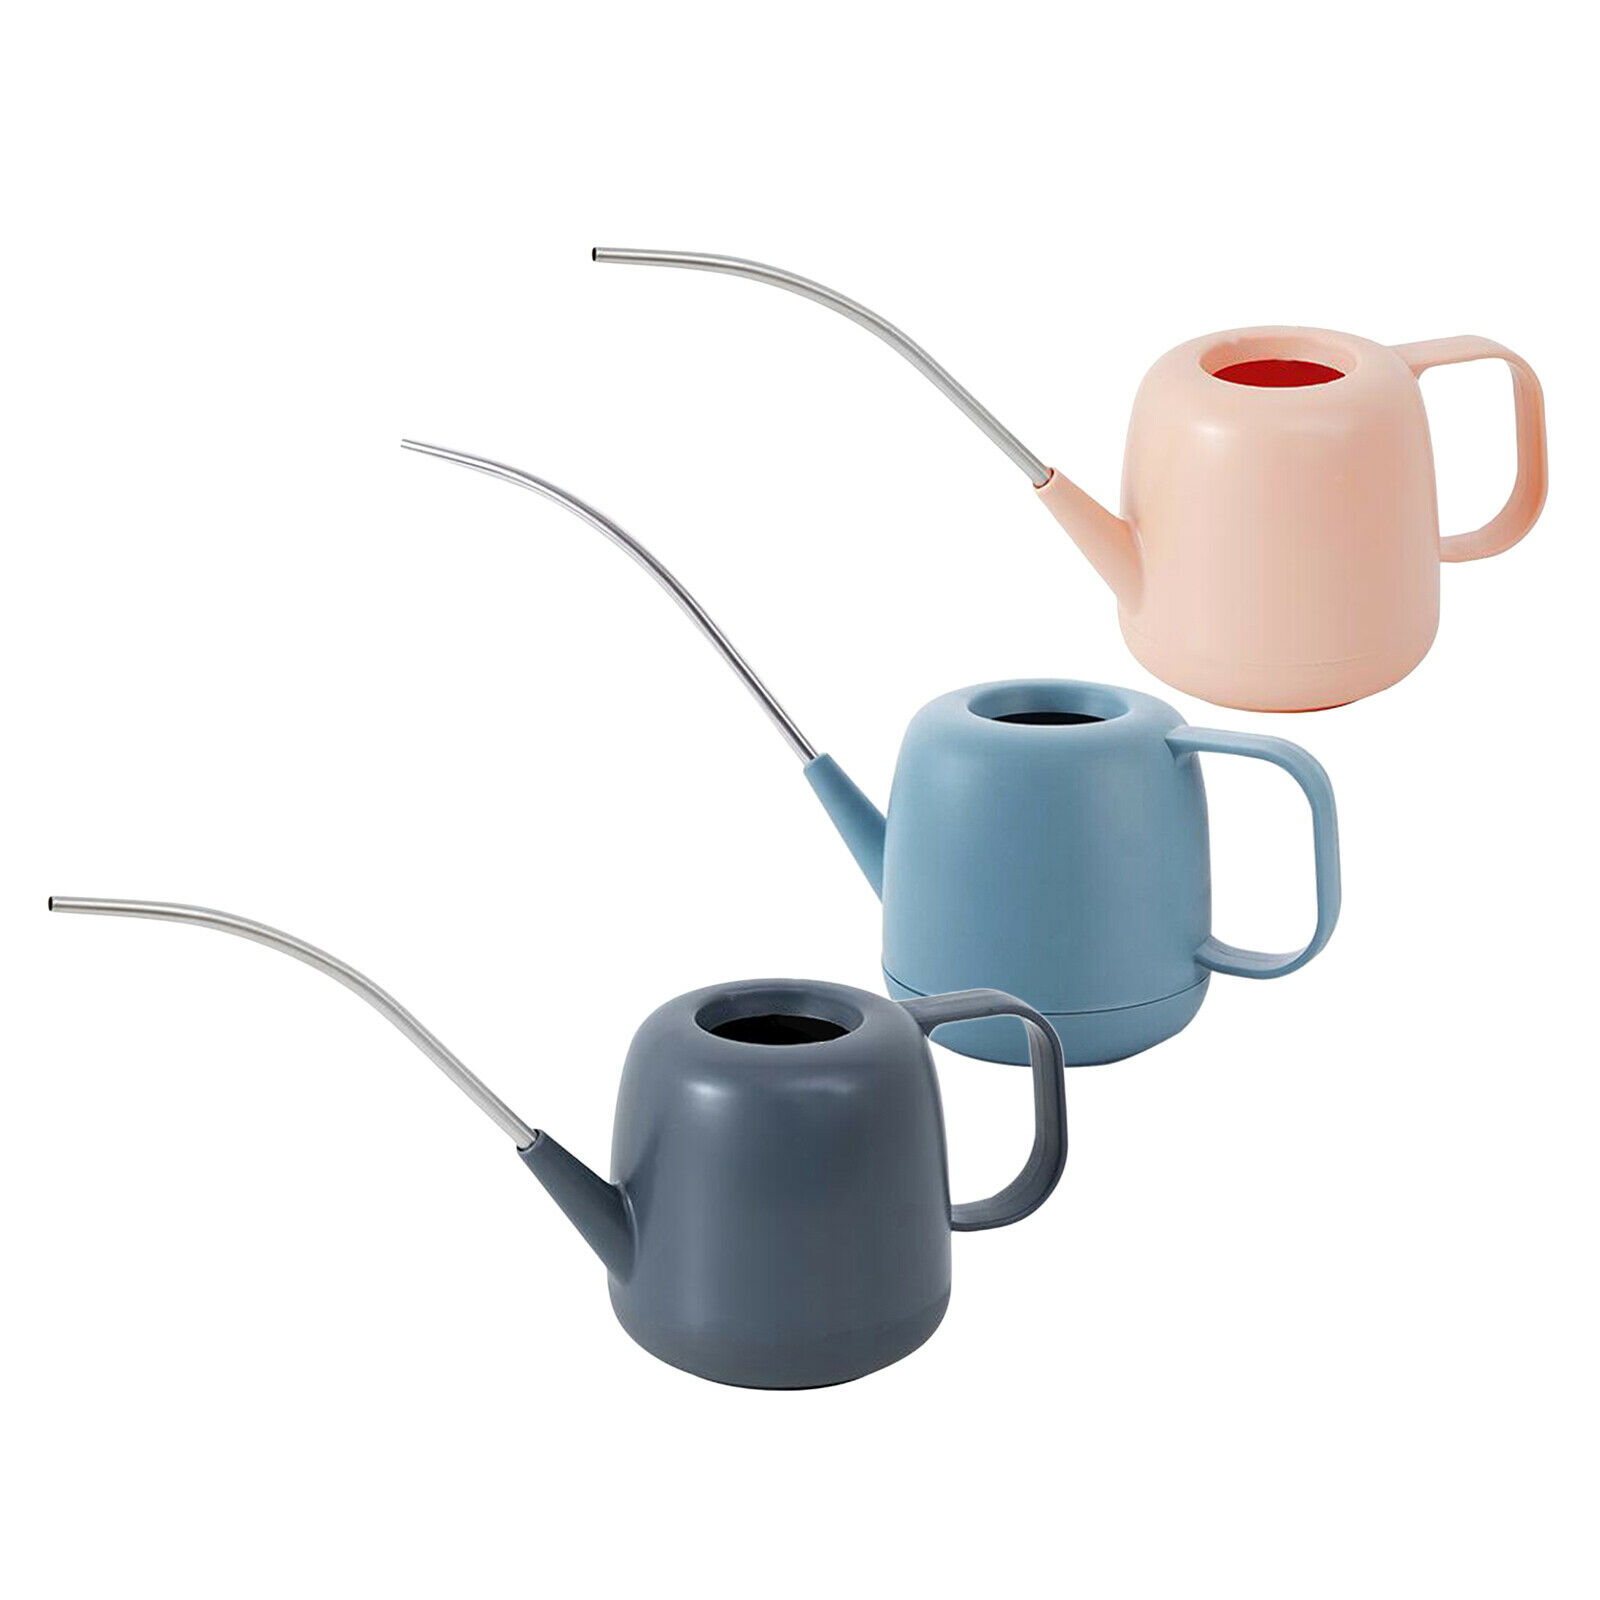 1000ml Watering Can Indoor Outdoor Plastic Watering Cans for House Plants